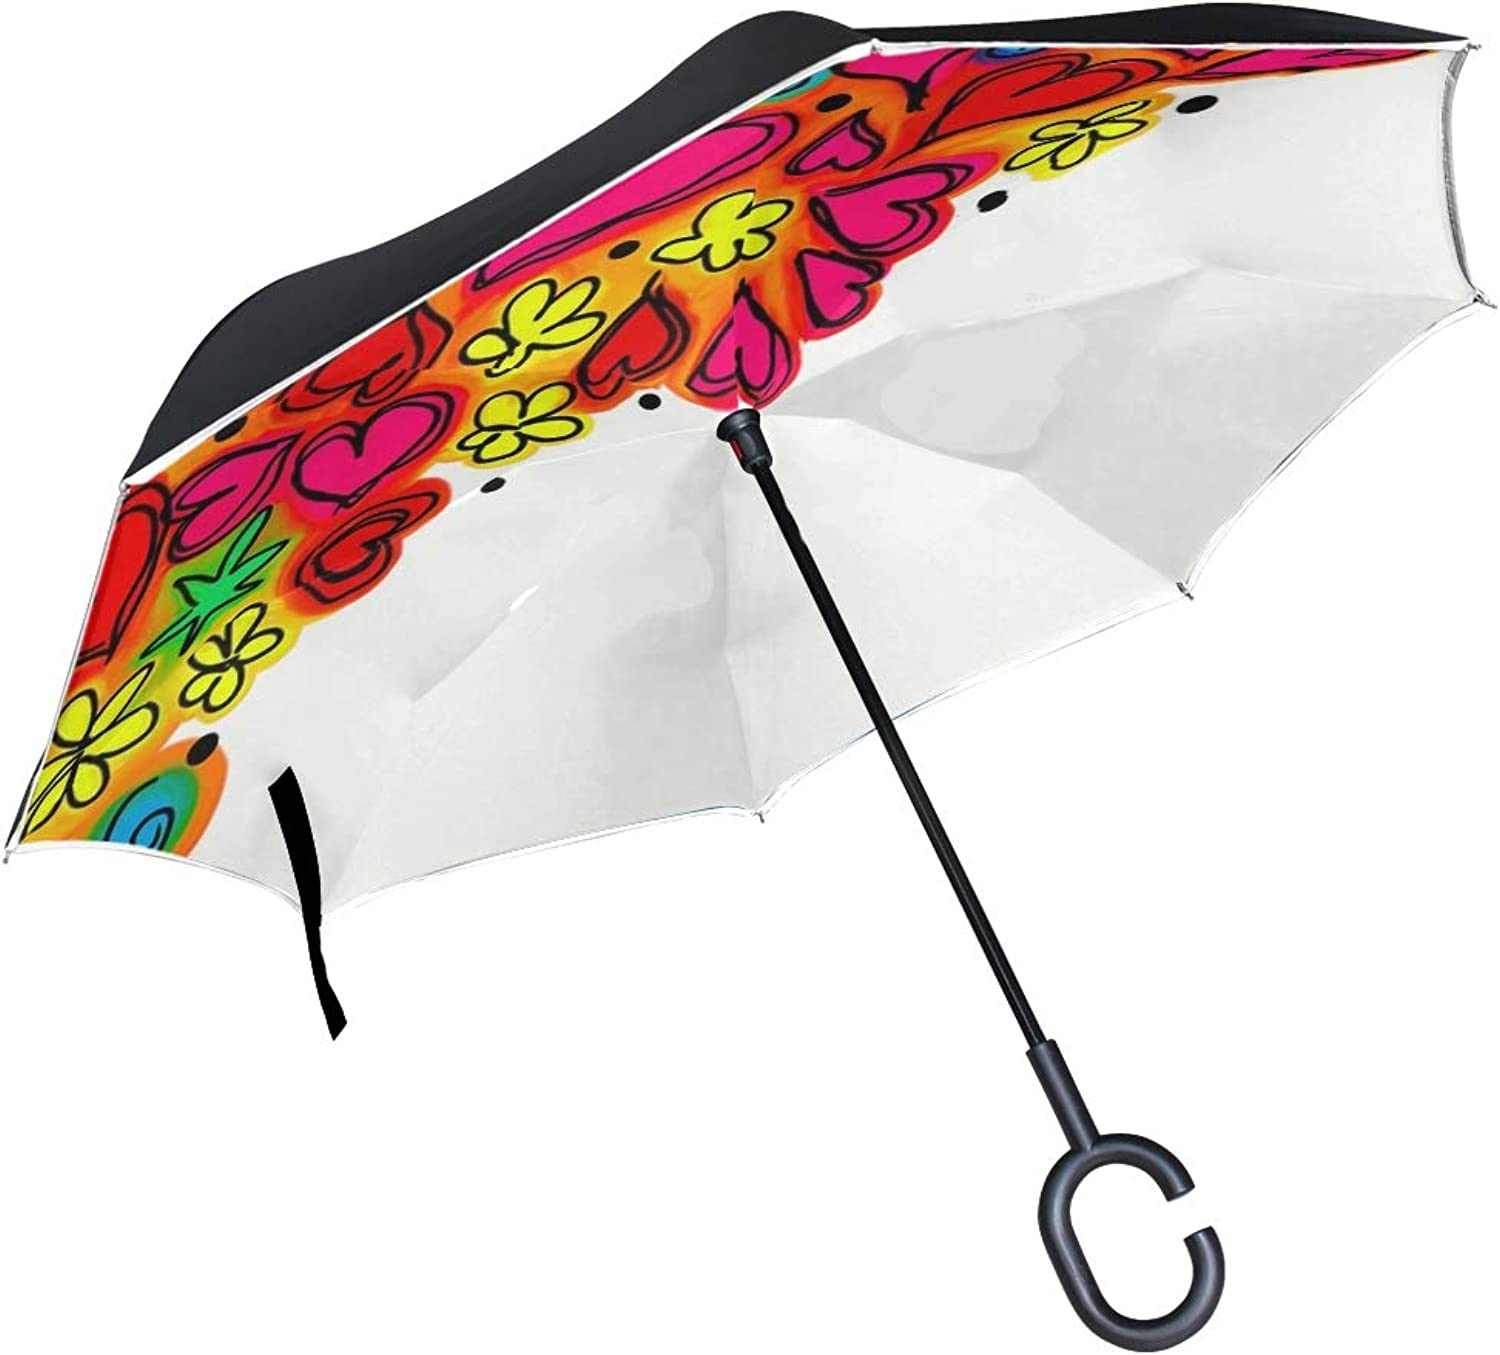 Double Layer Ingreened Doodle Sketch Felt Tip Hand Drawn Design Drawing 1070322 Umbrellas Reverse Folding Umbrella Windproof Uv Predection Big Straight Umbrella For Car Rain Outdoor With Cshaped Handle